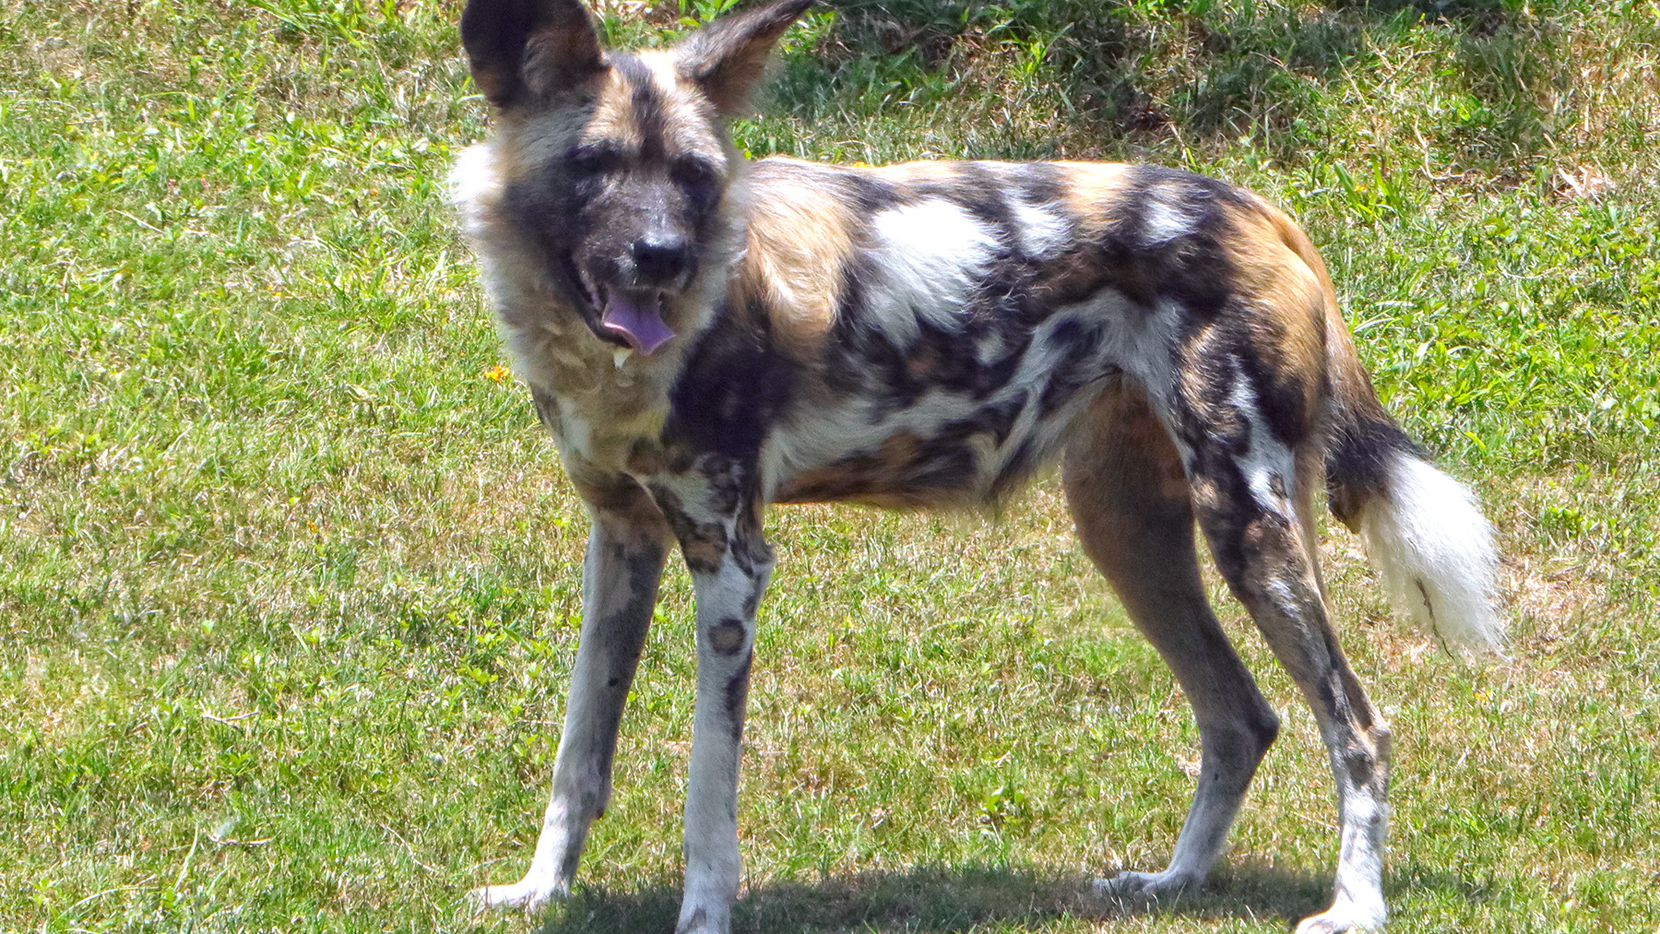 Ola, an 8-year-old female African painted dog, spends her first day in her new habitat. Ola and two other painted dogs, who are 2-year-old brothers, are the Dallas Zoo's first African painted dogs since 1962.